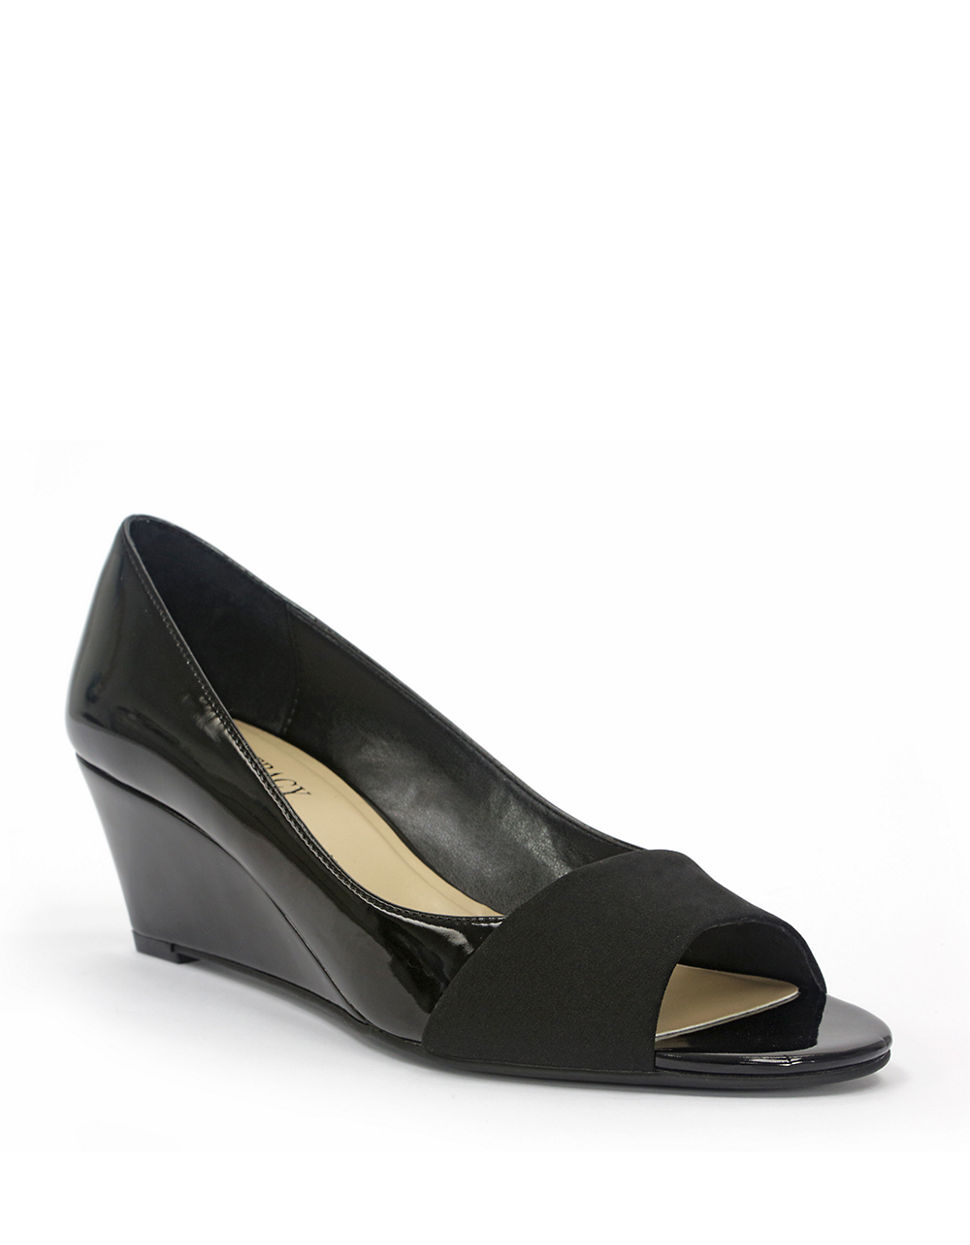 Black Patent Leather Wedge Shoes